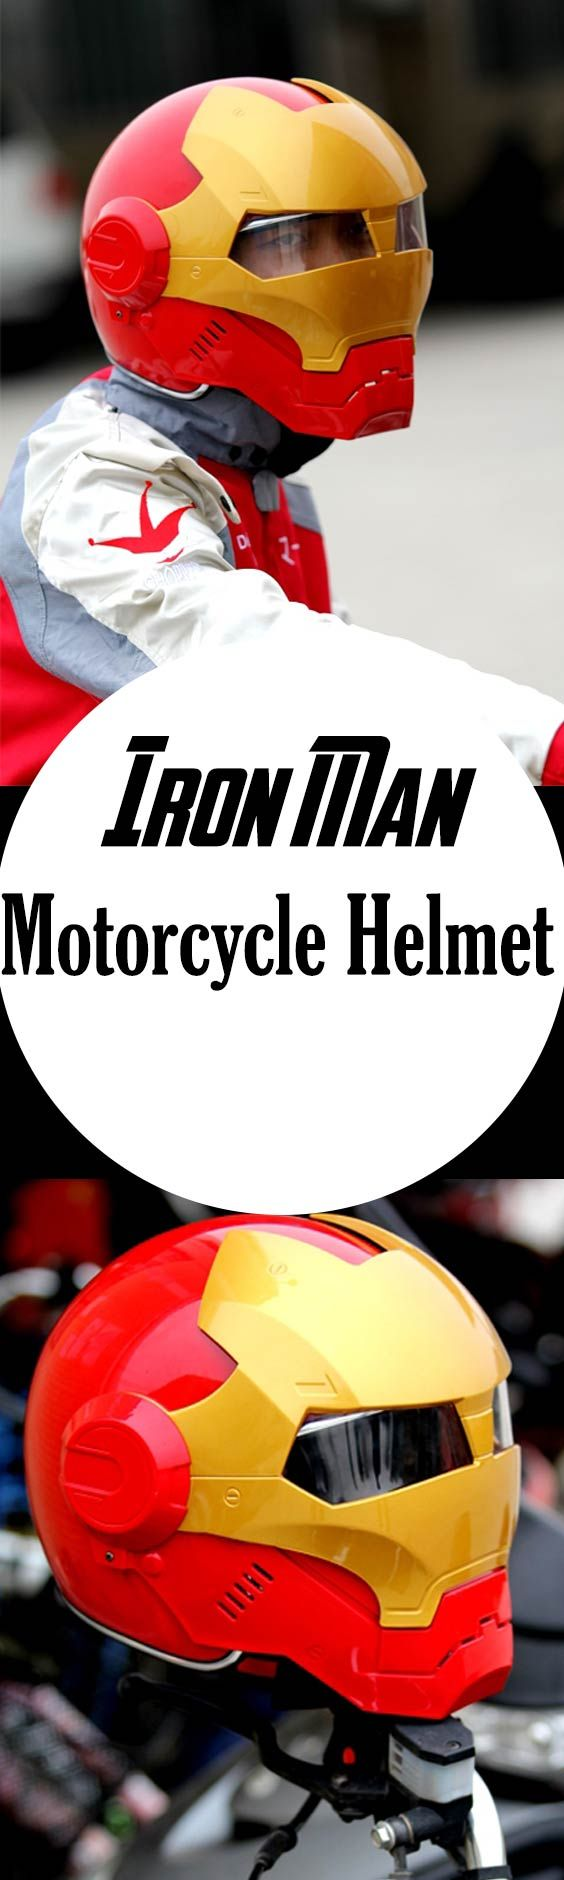 IRON MAN Full Face Motorcycle Helmet is perfect for some Iron Man style show-off